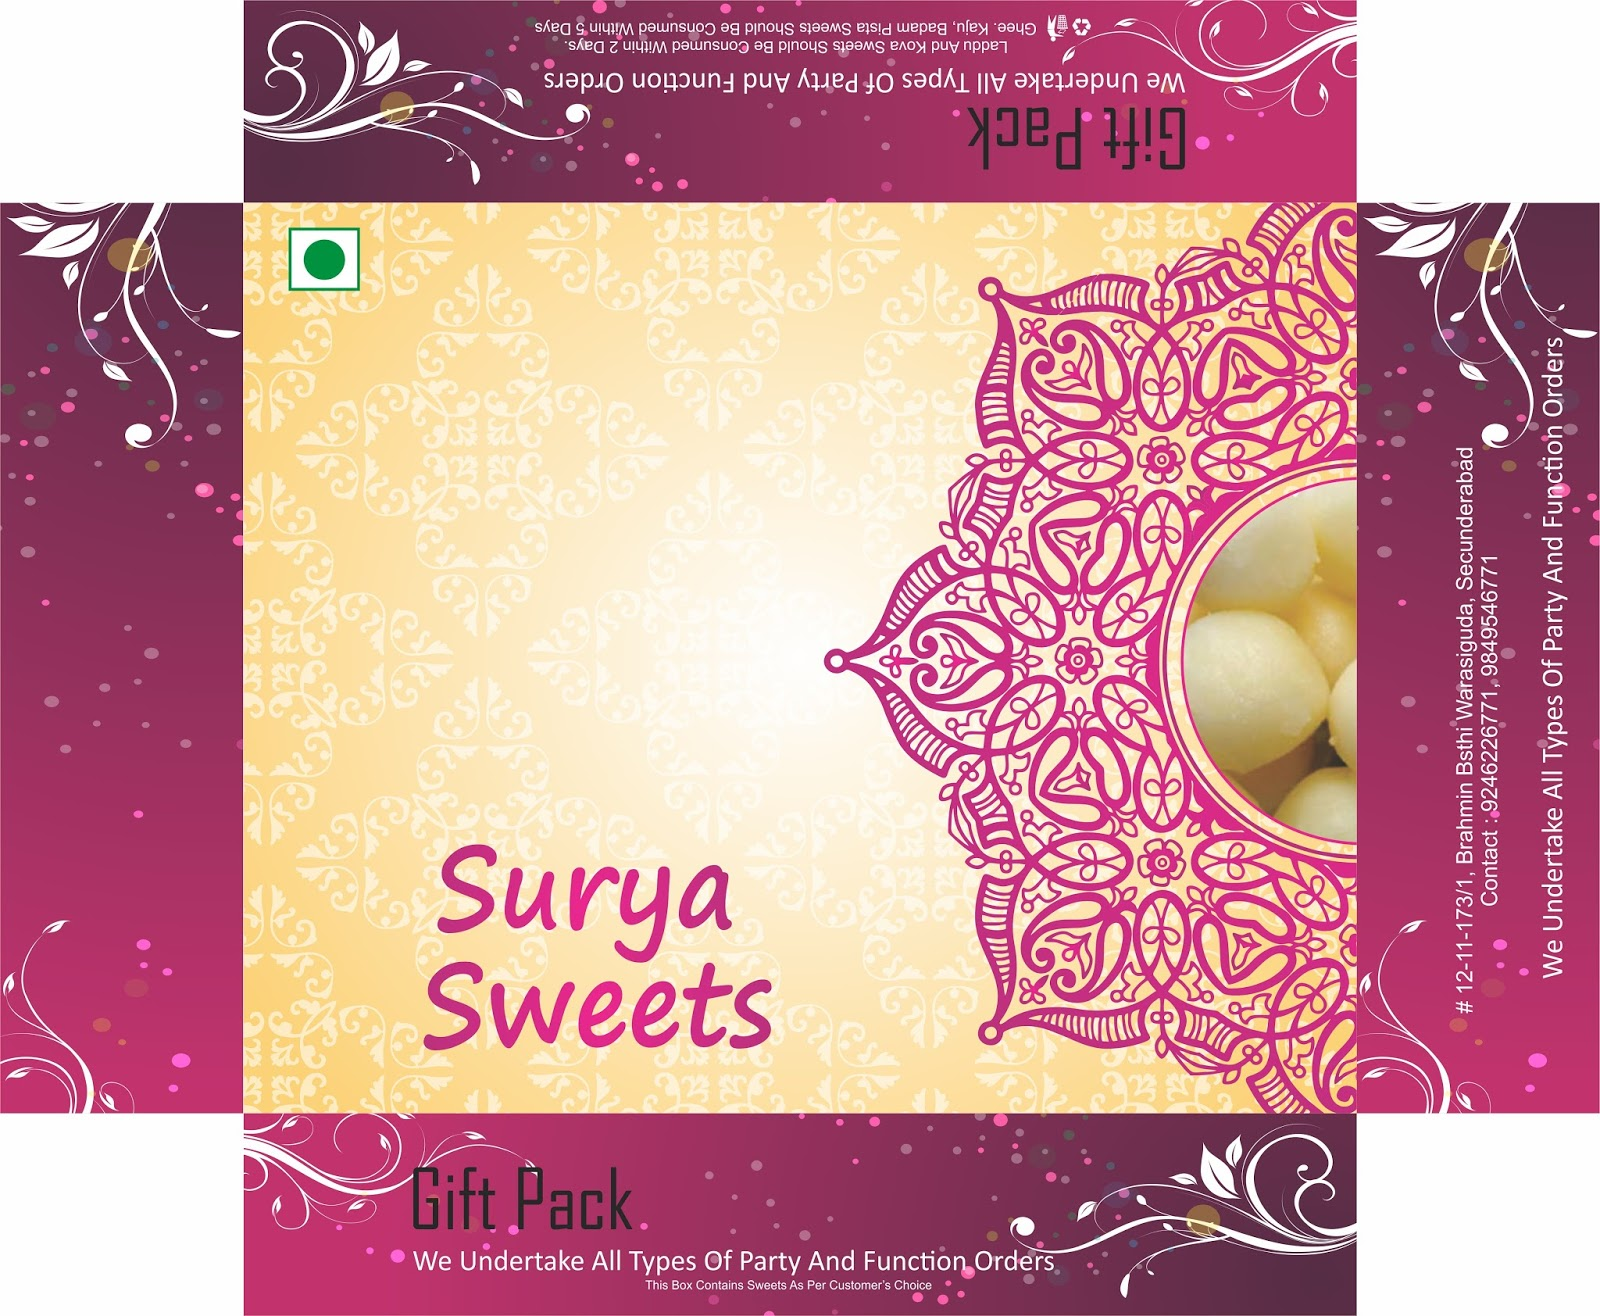 Sweet Box Design - Harshini Creative Graphics